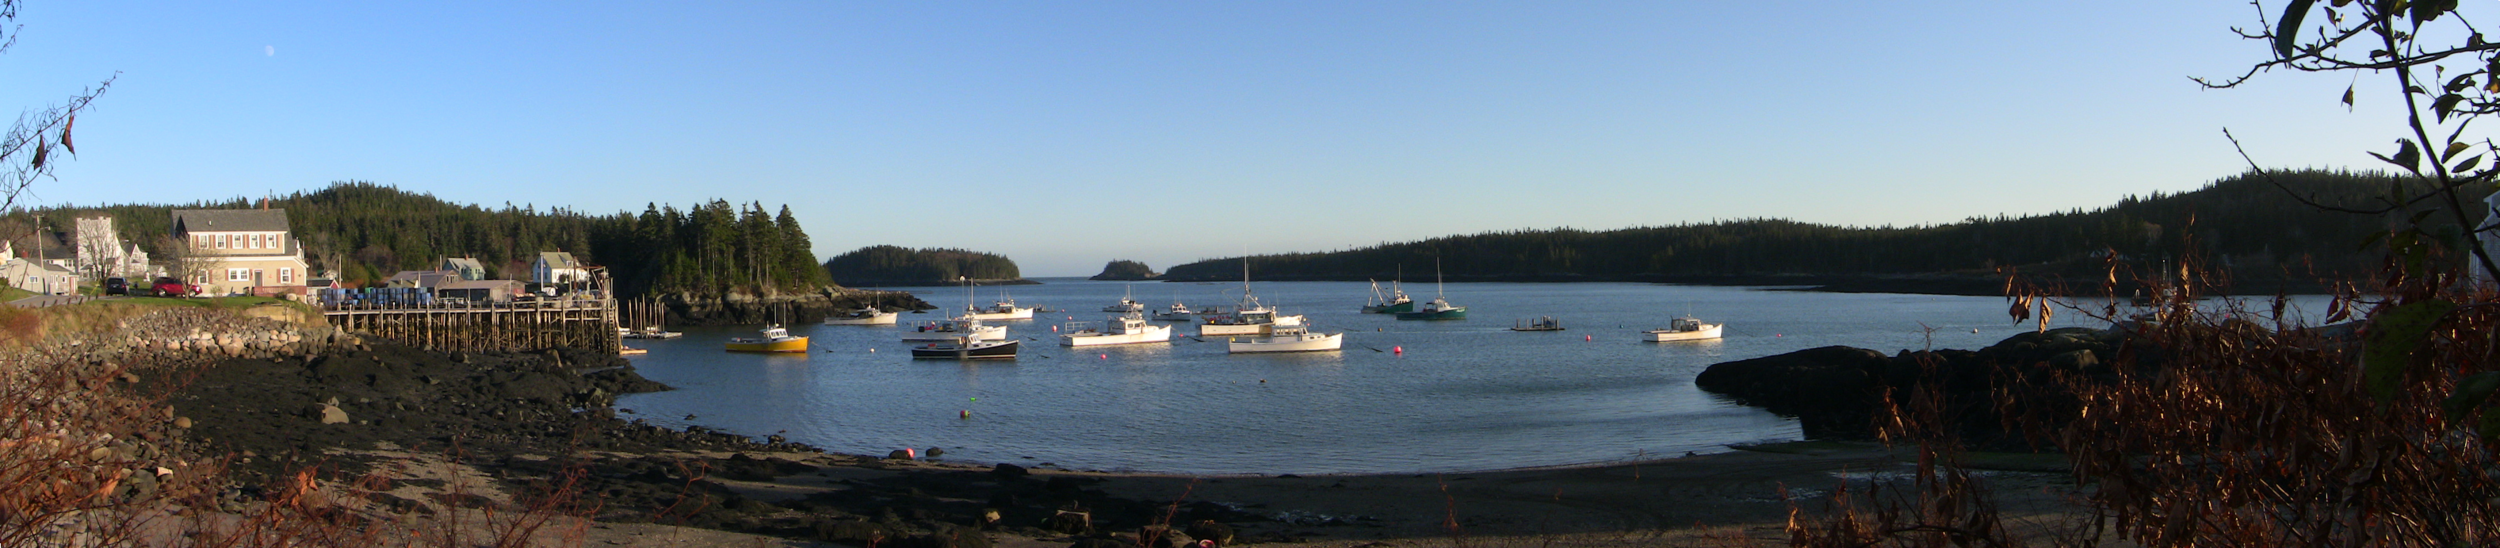 The harbor of Cutler, Maine. The tiny town is way Downeast.